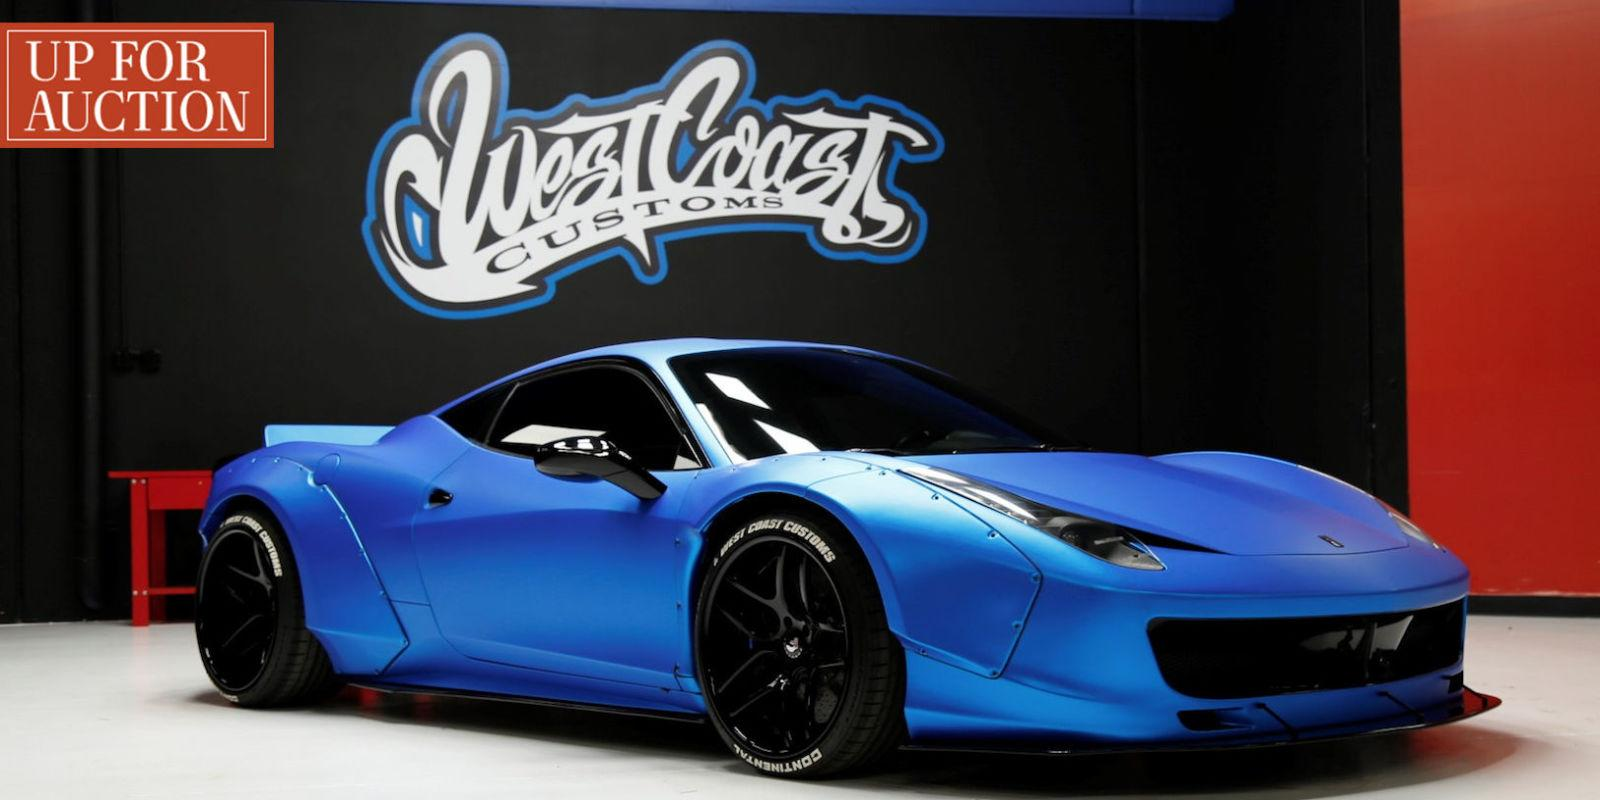 Justin Bieber's Lost Blue Ferrari is Up for Auction